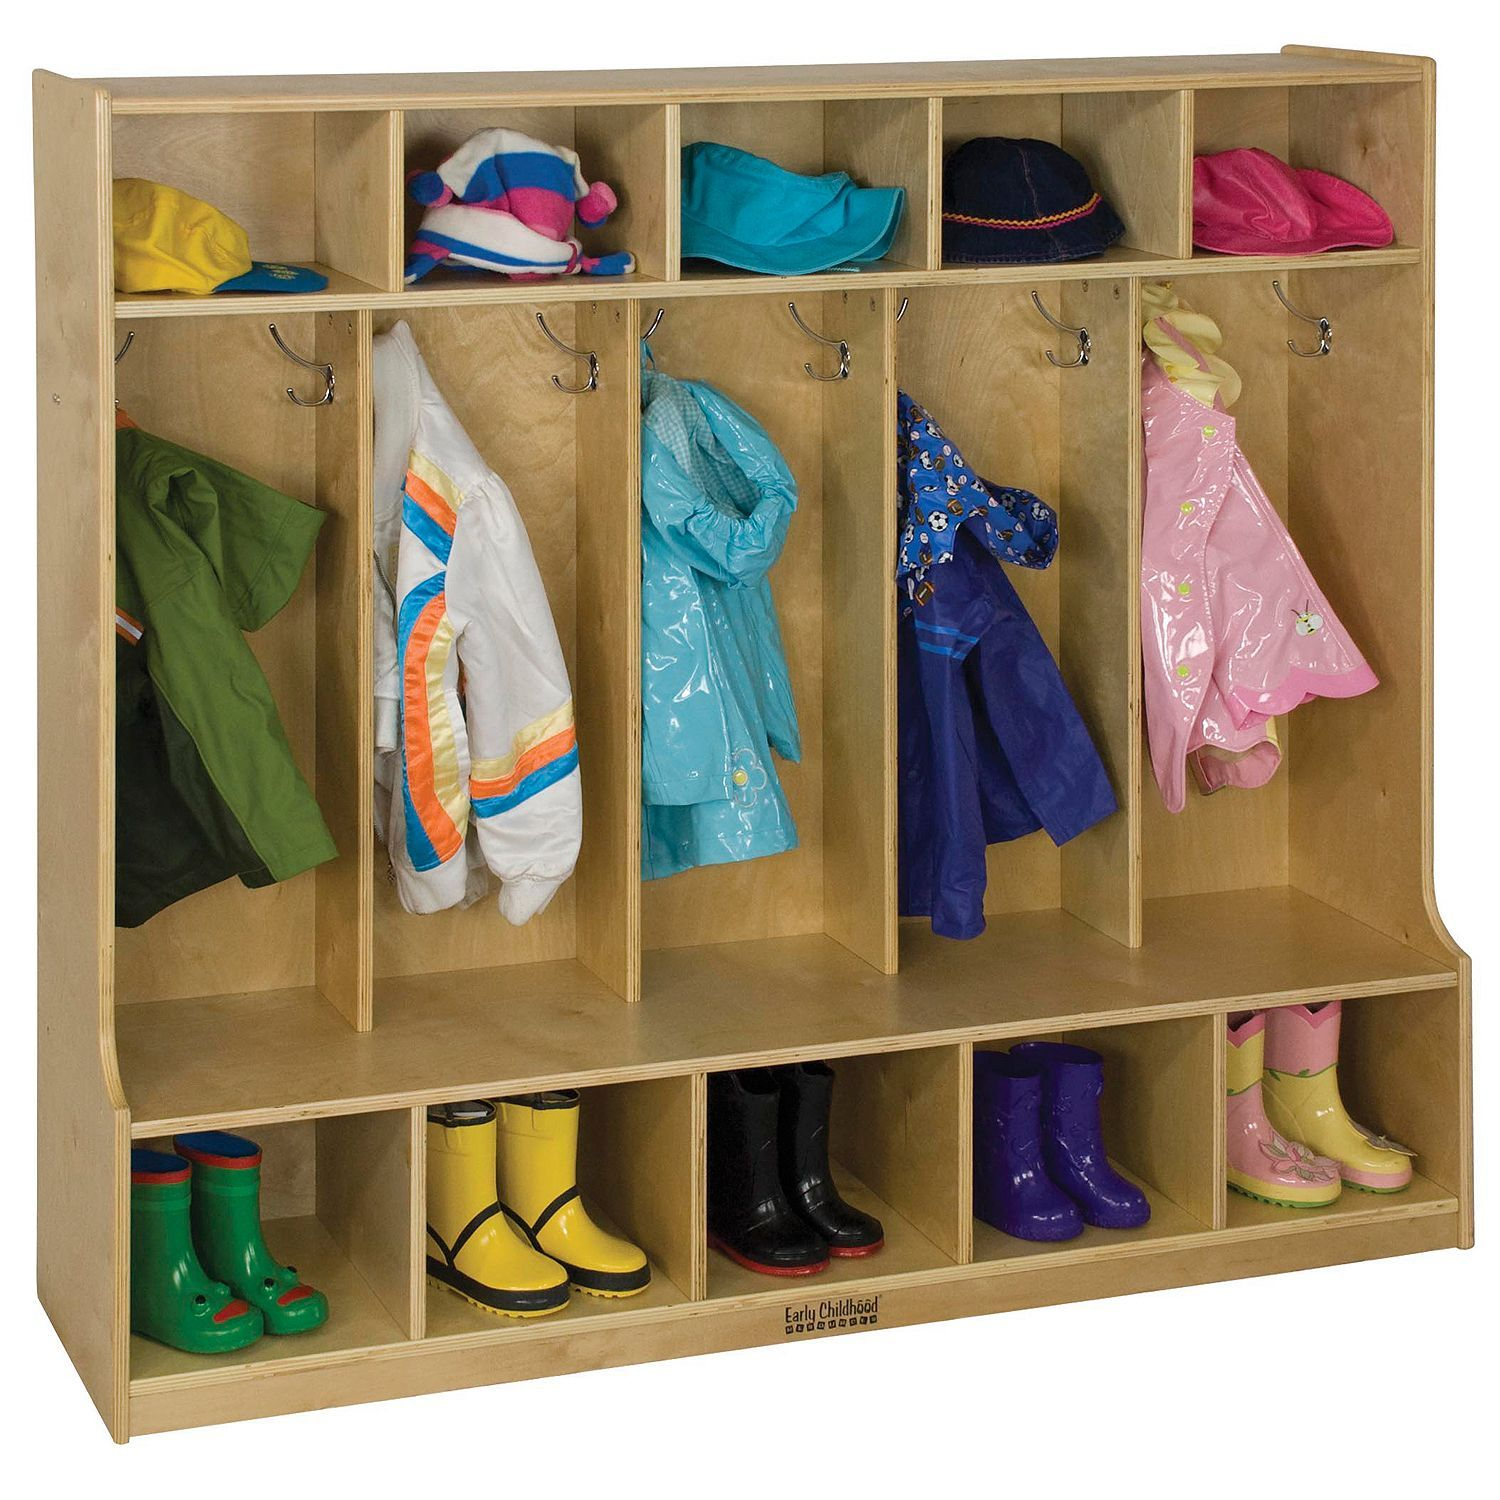 Buy For Garage Kids Organizer For Coasts And Winter Clothes 5 Section Coat Locker W Built In Bench Sam S Club Locker Storage Cubbies Ecr4kids